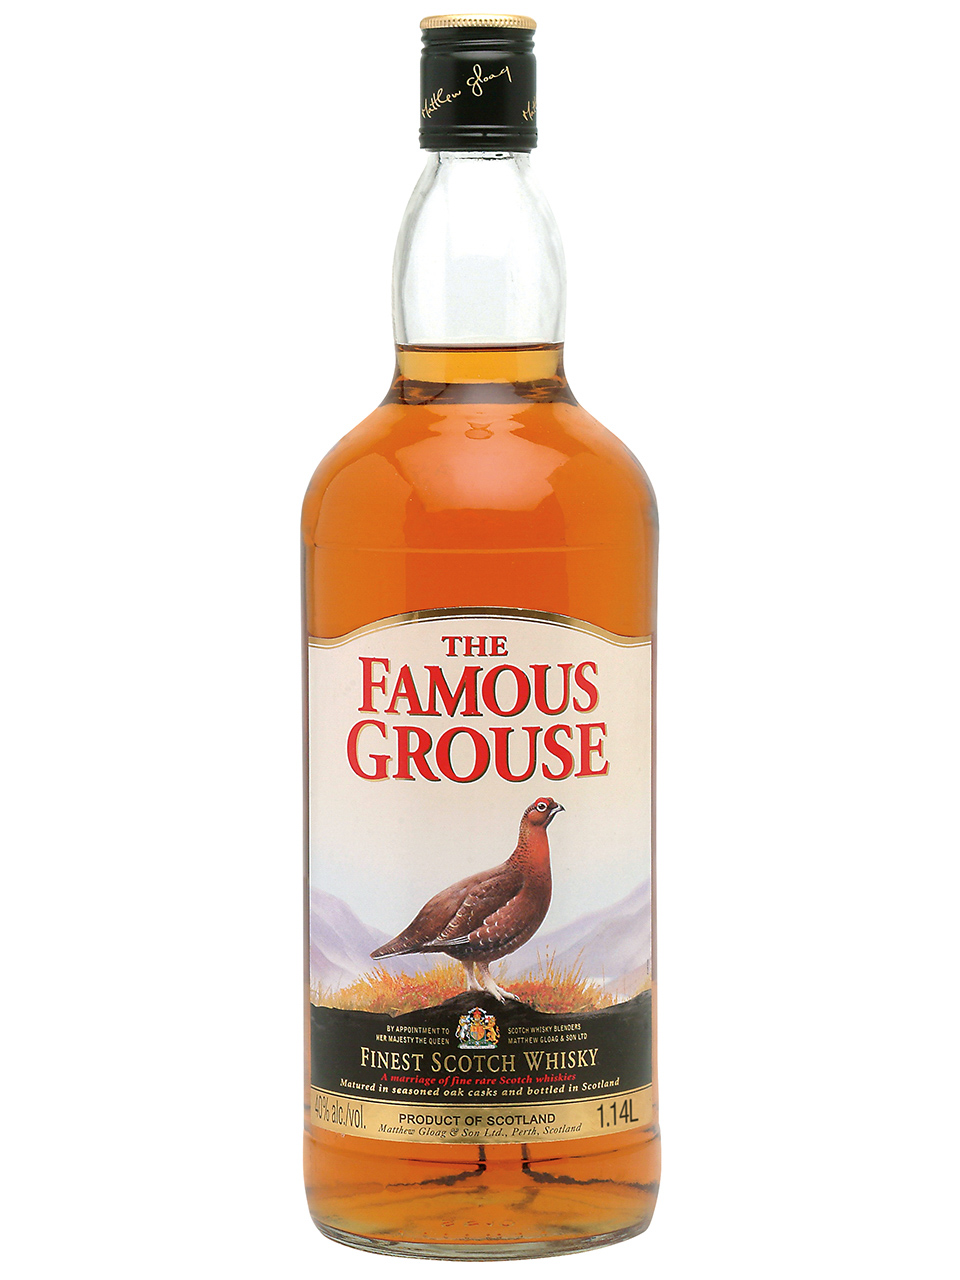 The Famous Grouse Scotch Whisky